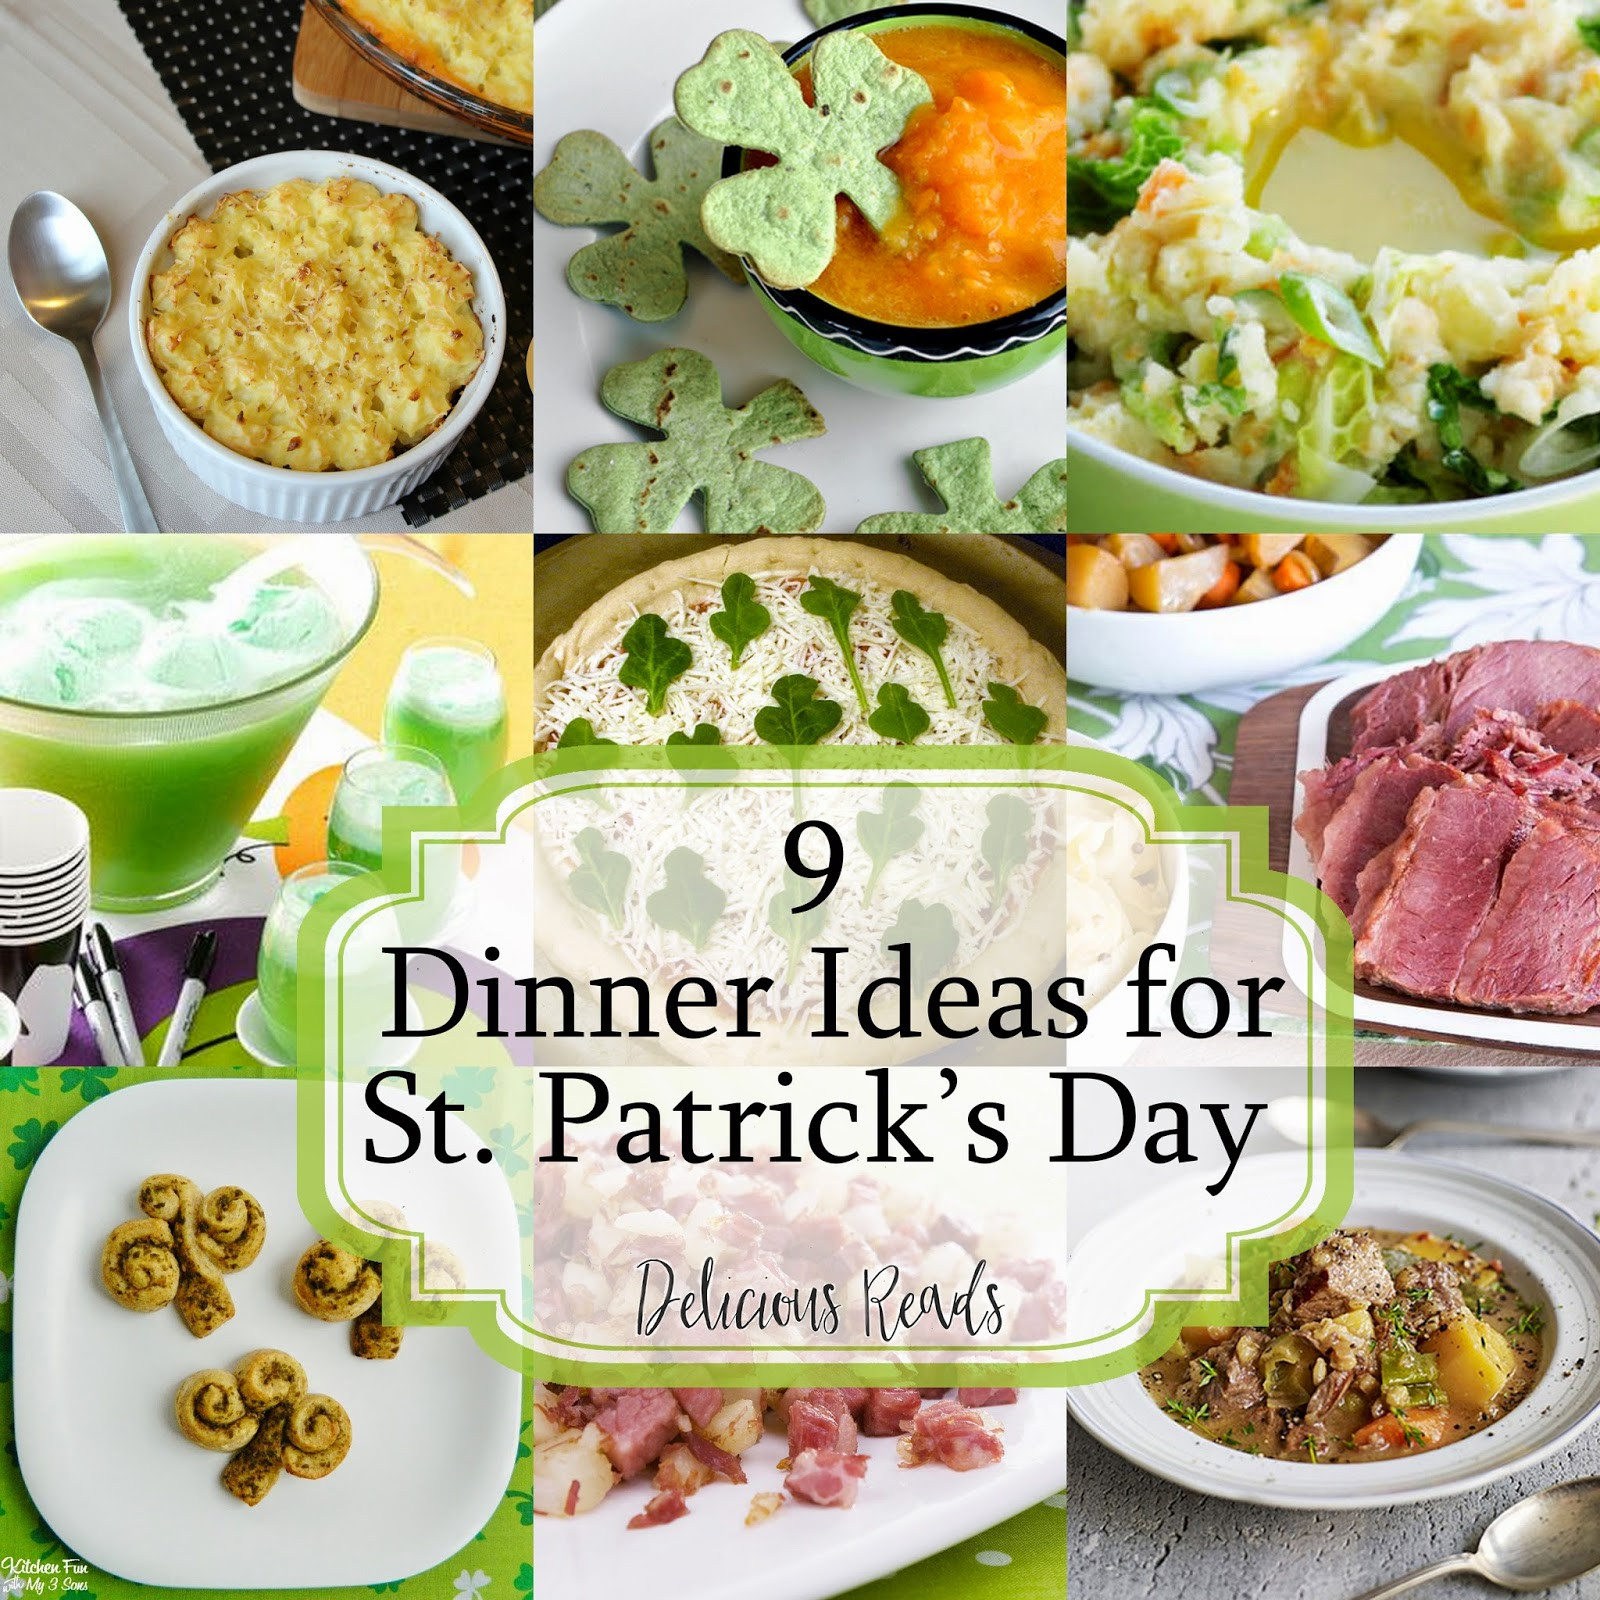 St Patricks Day Dinner  Delicious Reads 9 Easy Irish Foods for St Patrick s Day